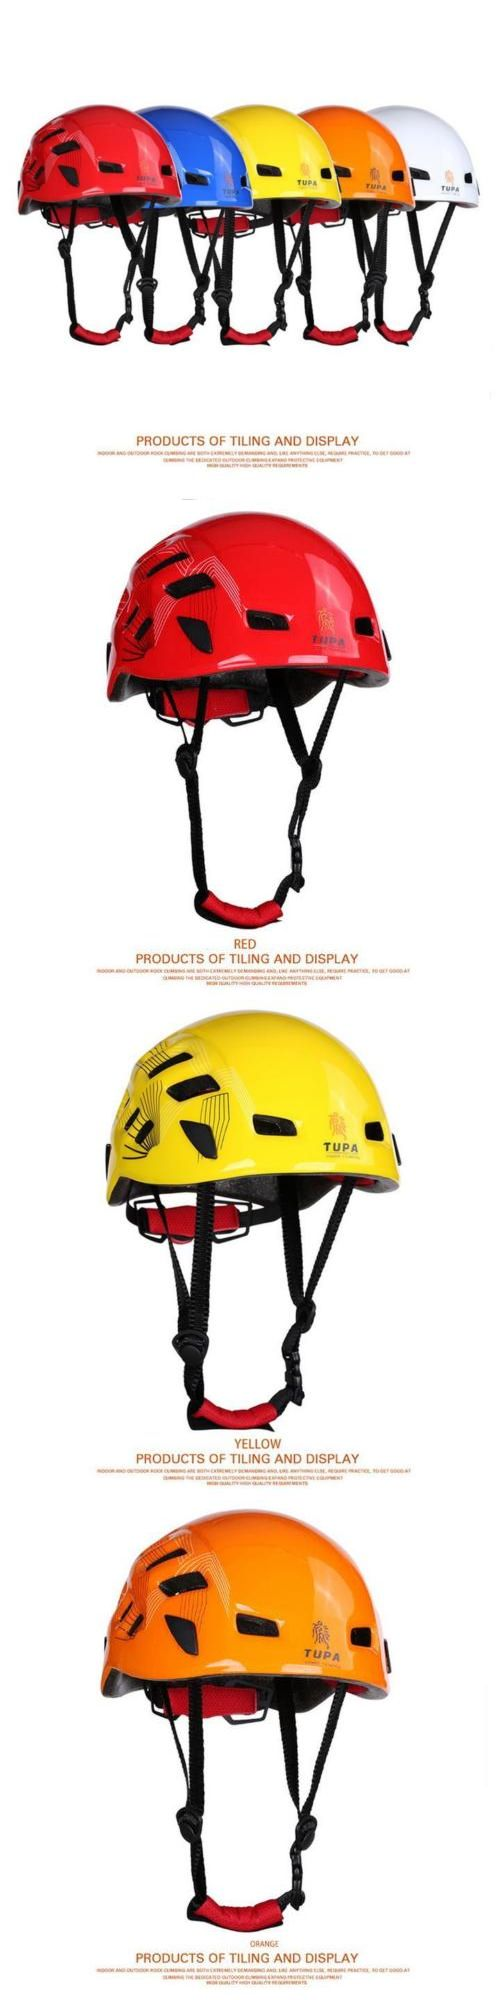 Other Climbing Clothing 158977: Safety Rock Climbing Tree Carving Downhill Rescue Helmet Gear Equipment % -> BUY IT NOW ONLY: $45.99 on eBay!